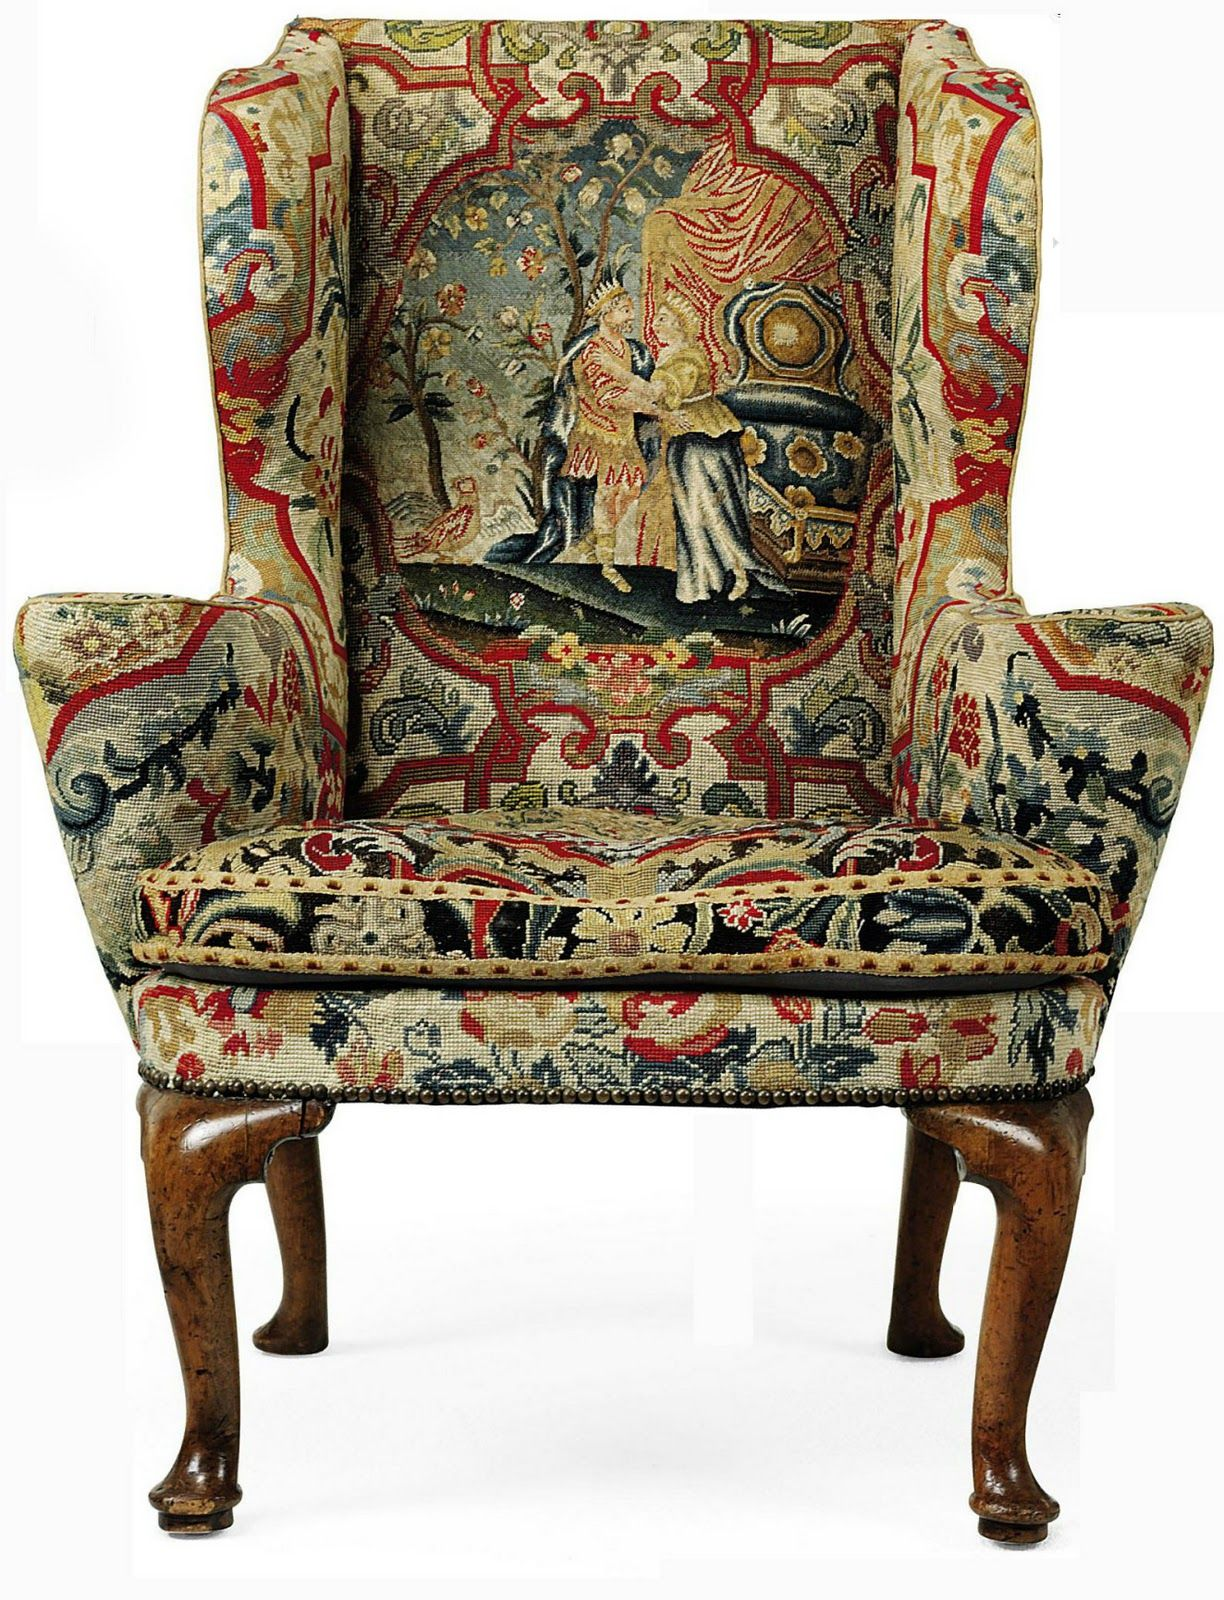 Antique Style: 18th Century George III Wingback Chair Upholstering Project - Antique Style: 18th Century George III Wingback Chair Upholstering